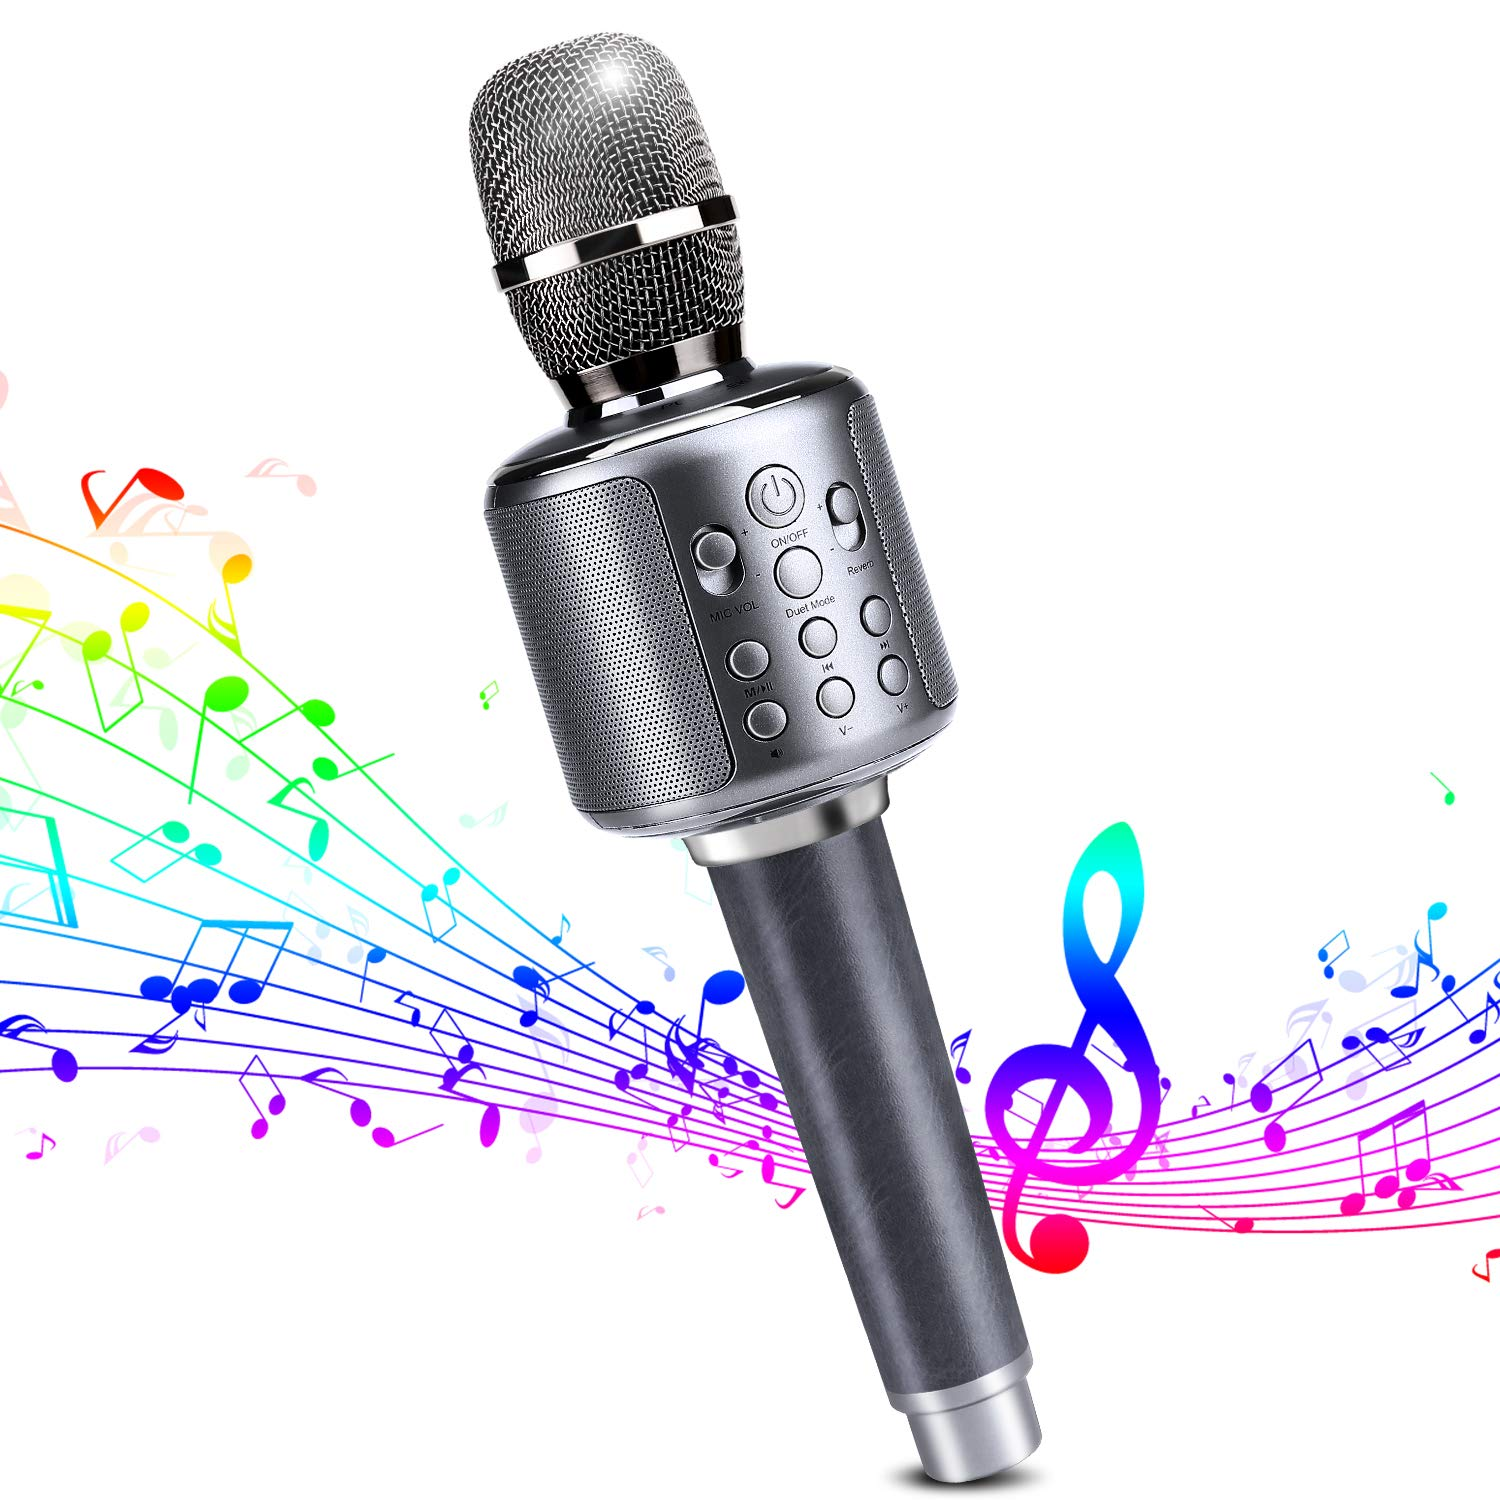 Wireless Bluetooth Karaoke Microphone Premium Portable Handheld Microphone Built-in Speaker with Multi-Function Professional Karaoke Rechargeable Player for iPhone/Android/iPad/PC etc. (y11s)